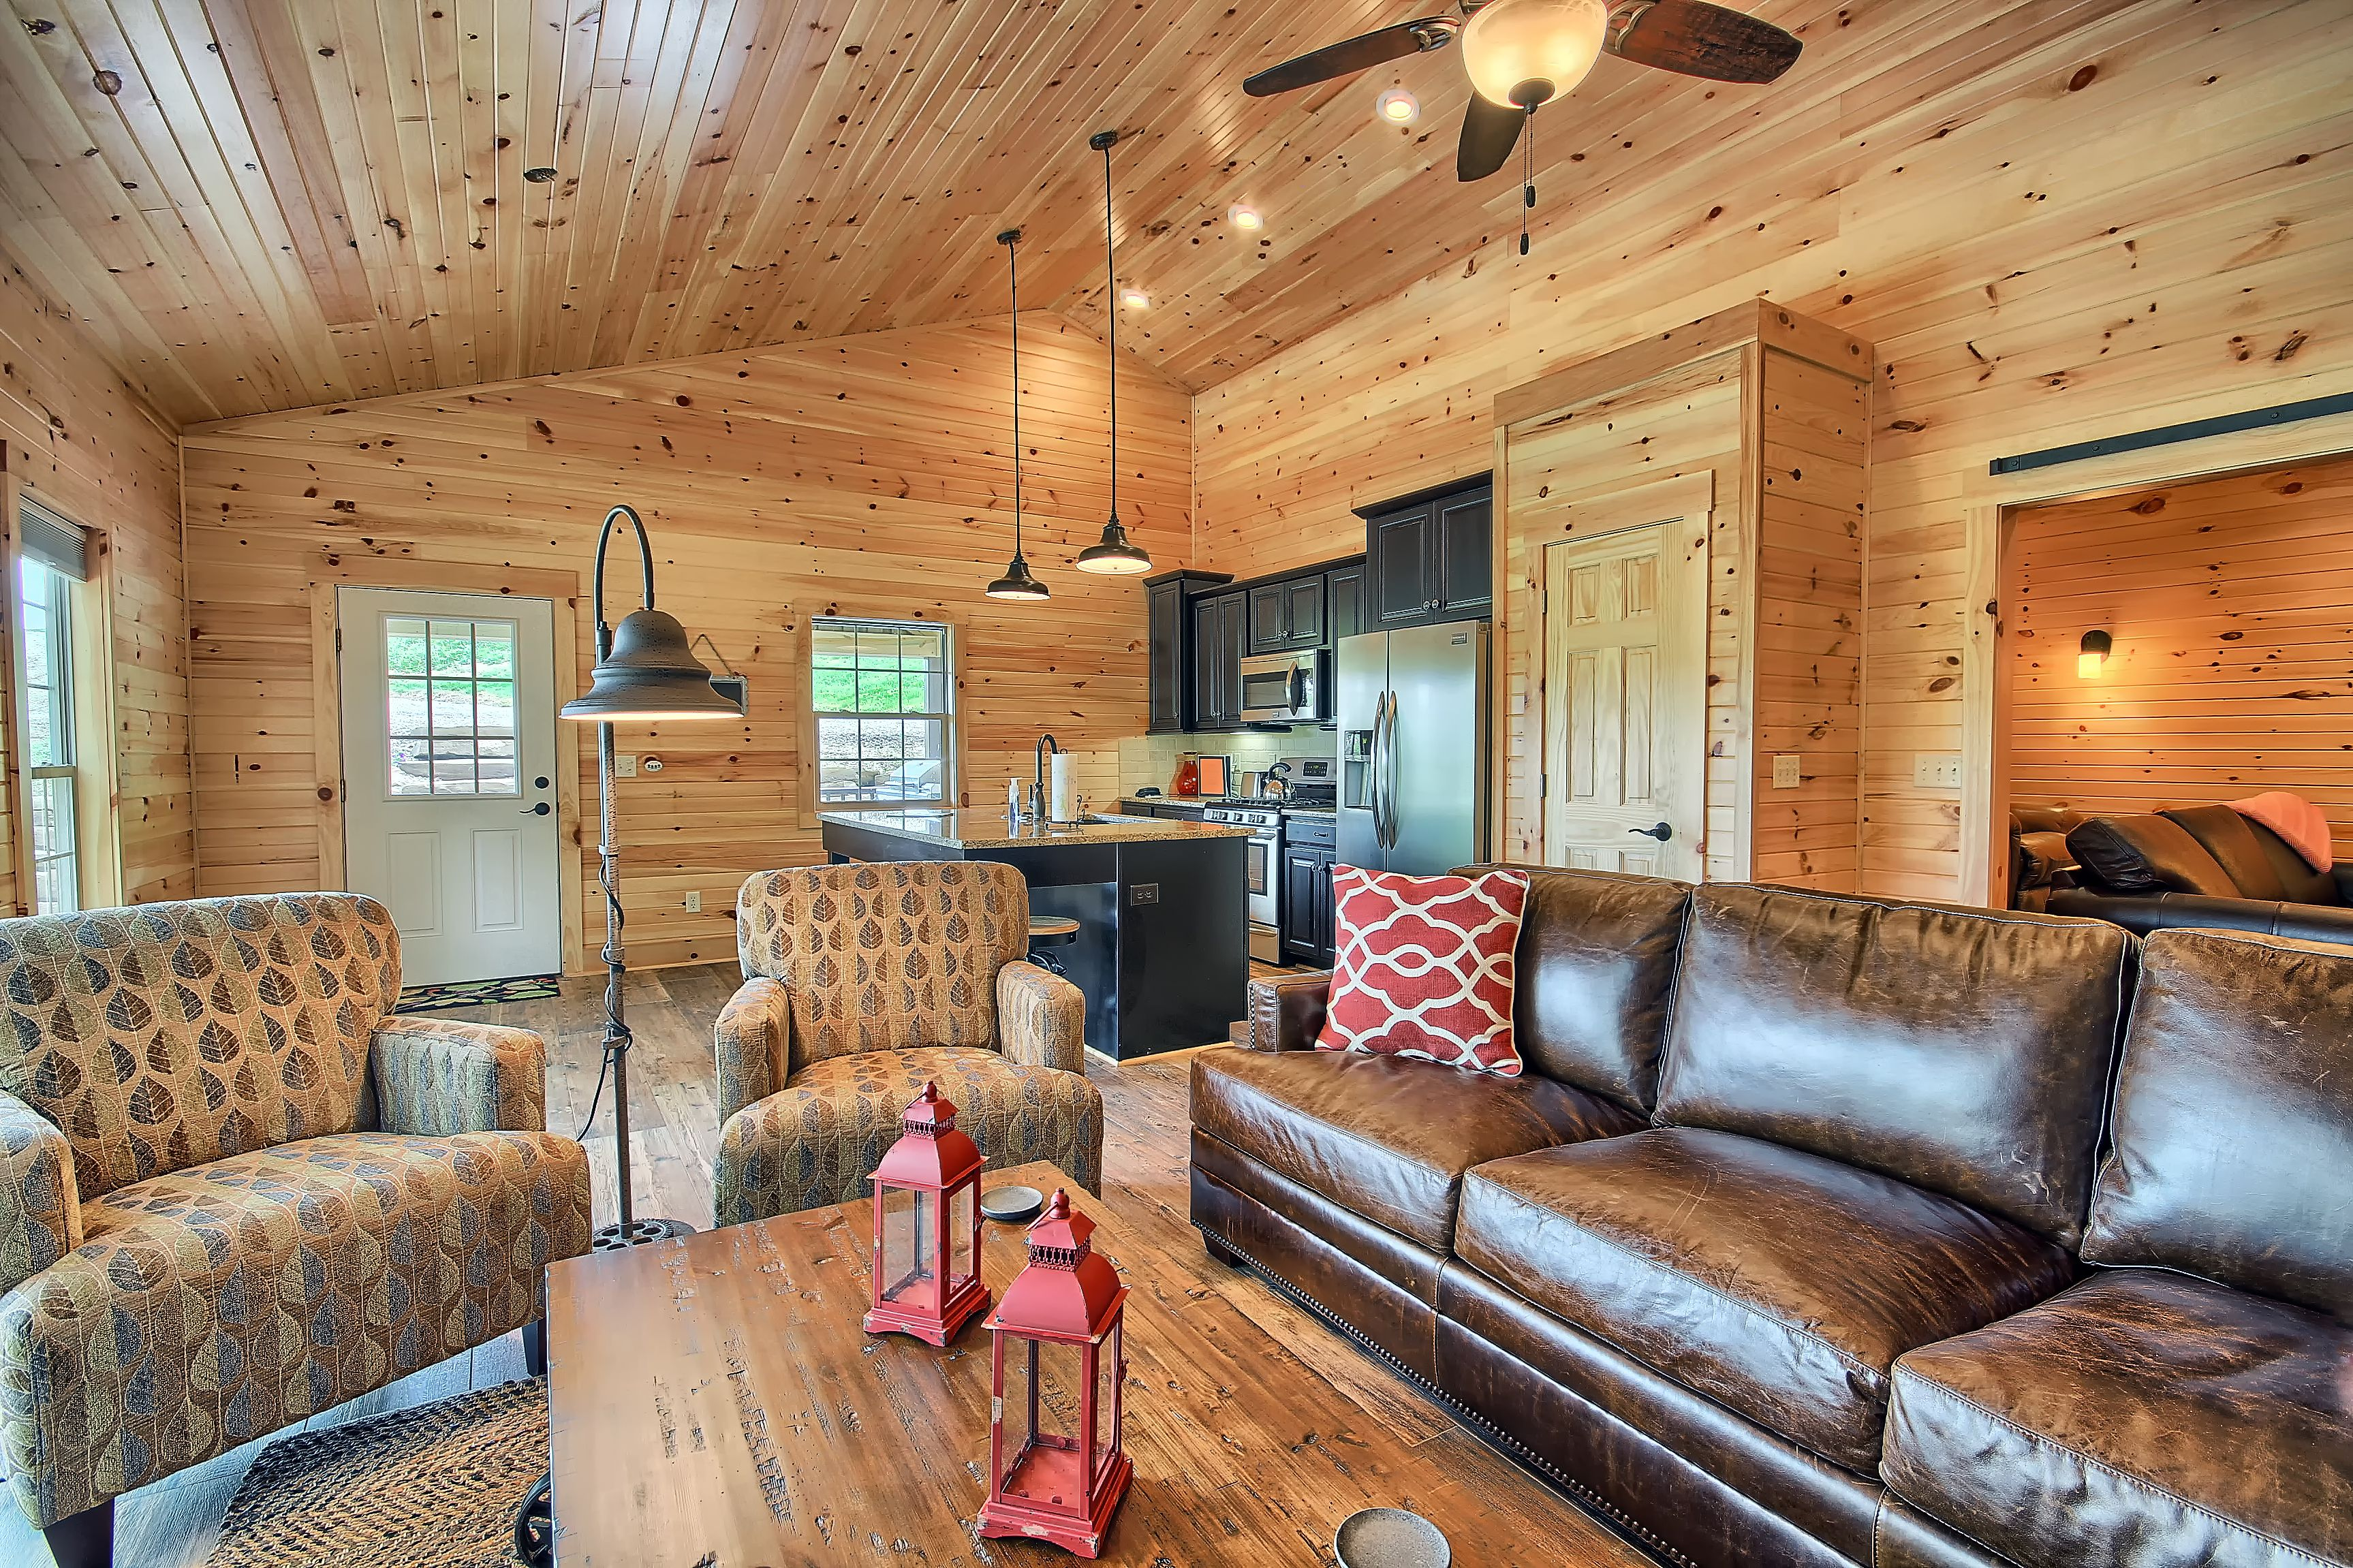 The Bookers Luxury Cabin Bourbon Ridge Retreat Hocking Hills Luxury Lodges Amp Cabins